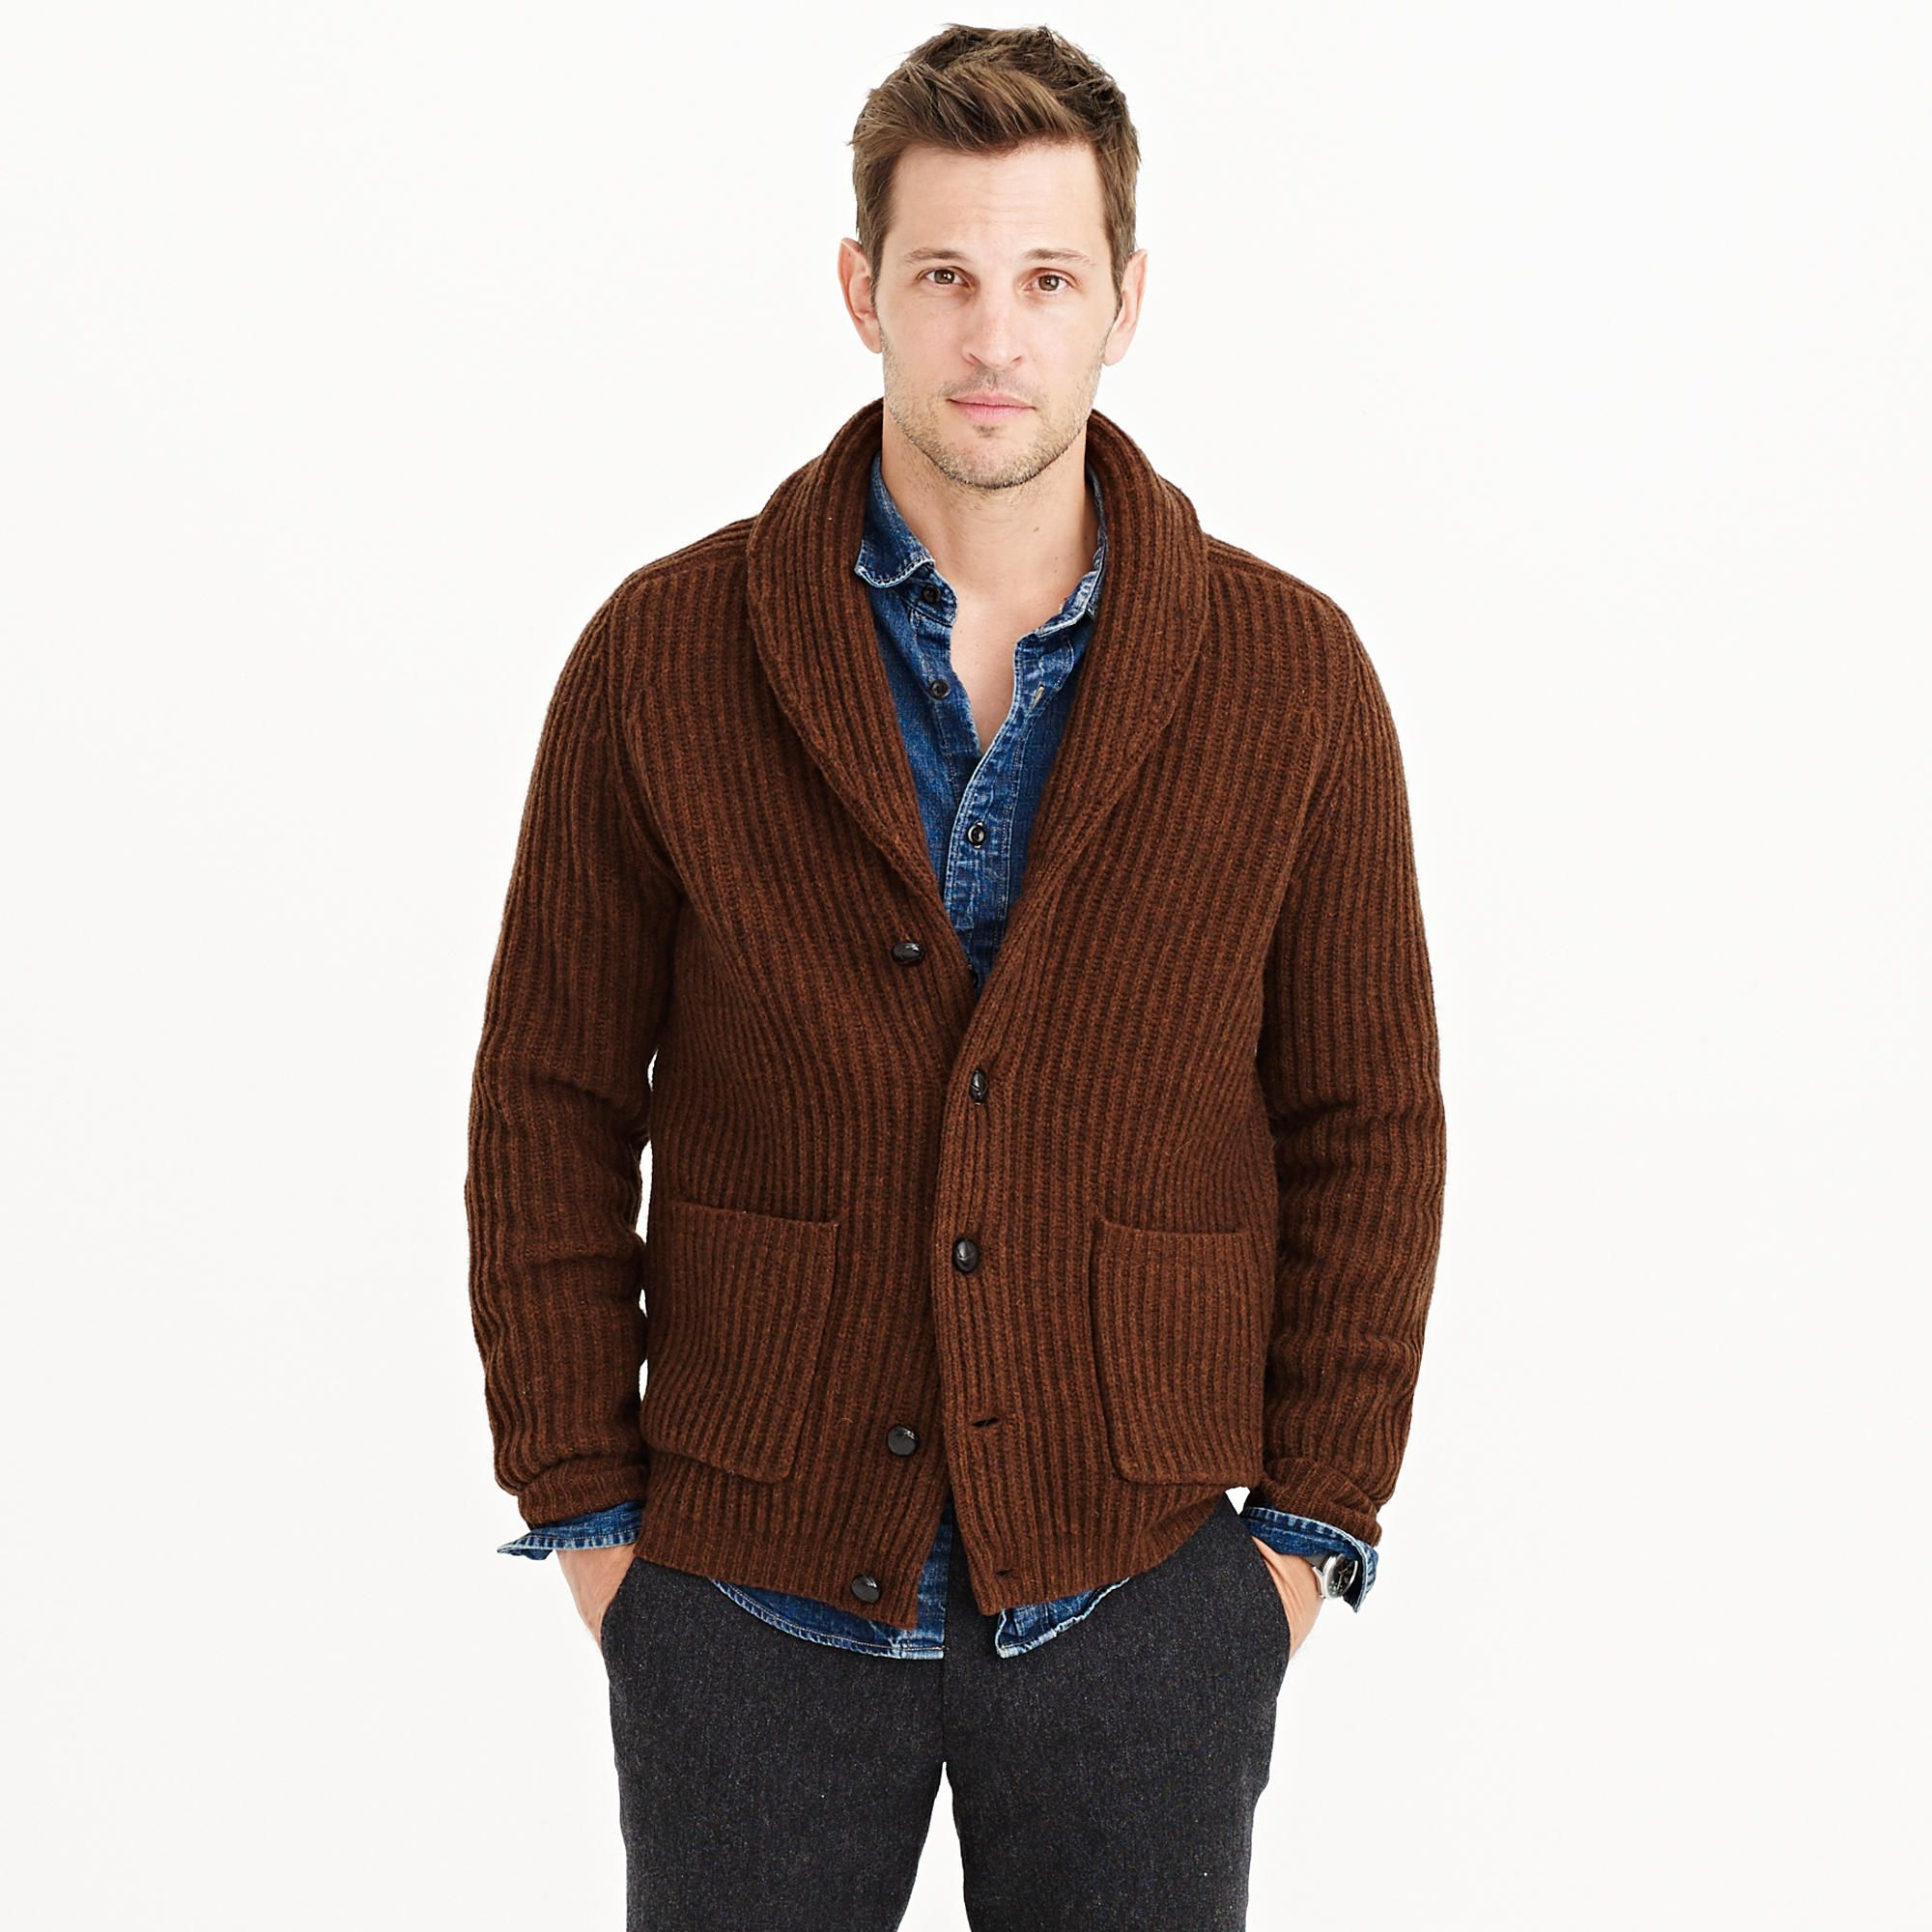 b686bd92803 Lambswool ribbed shawl collar cardigan - Heather Cognac - J. Crew ...